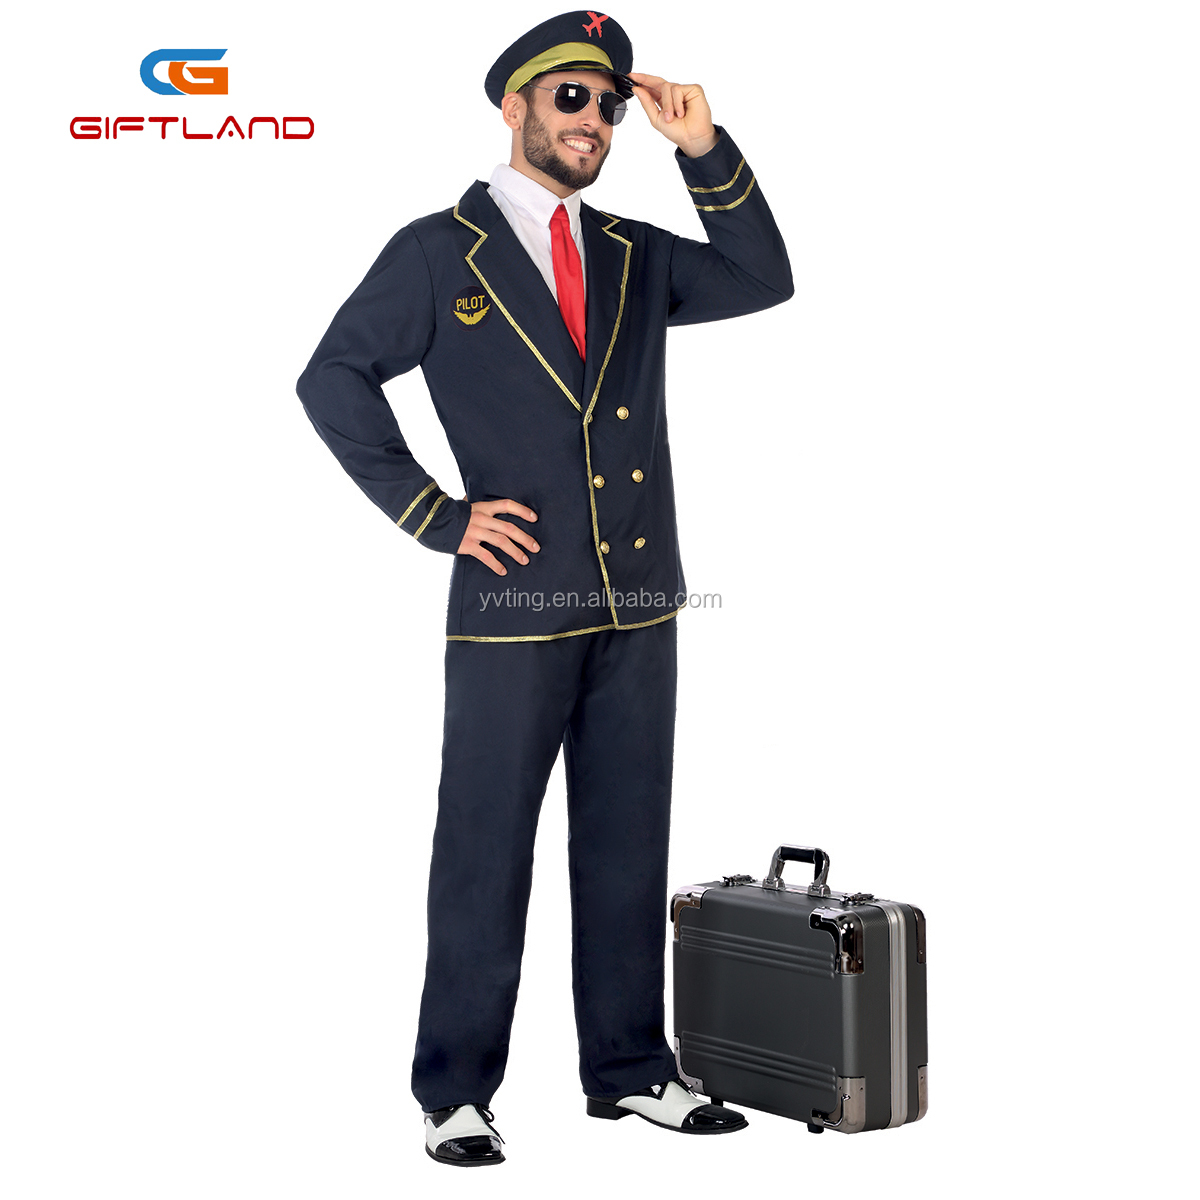 Men's Captain Deluxe Costume with Jacket Trousers Cap